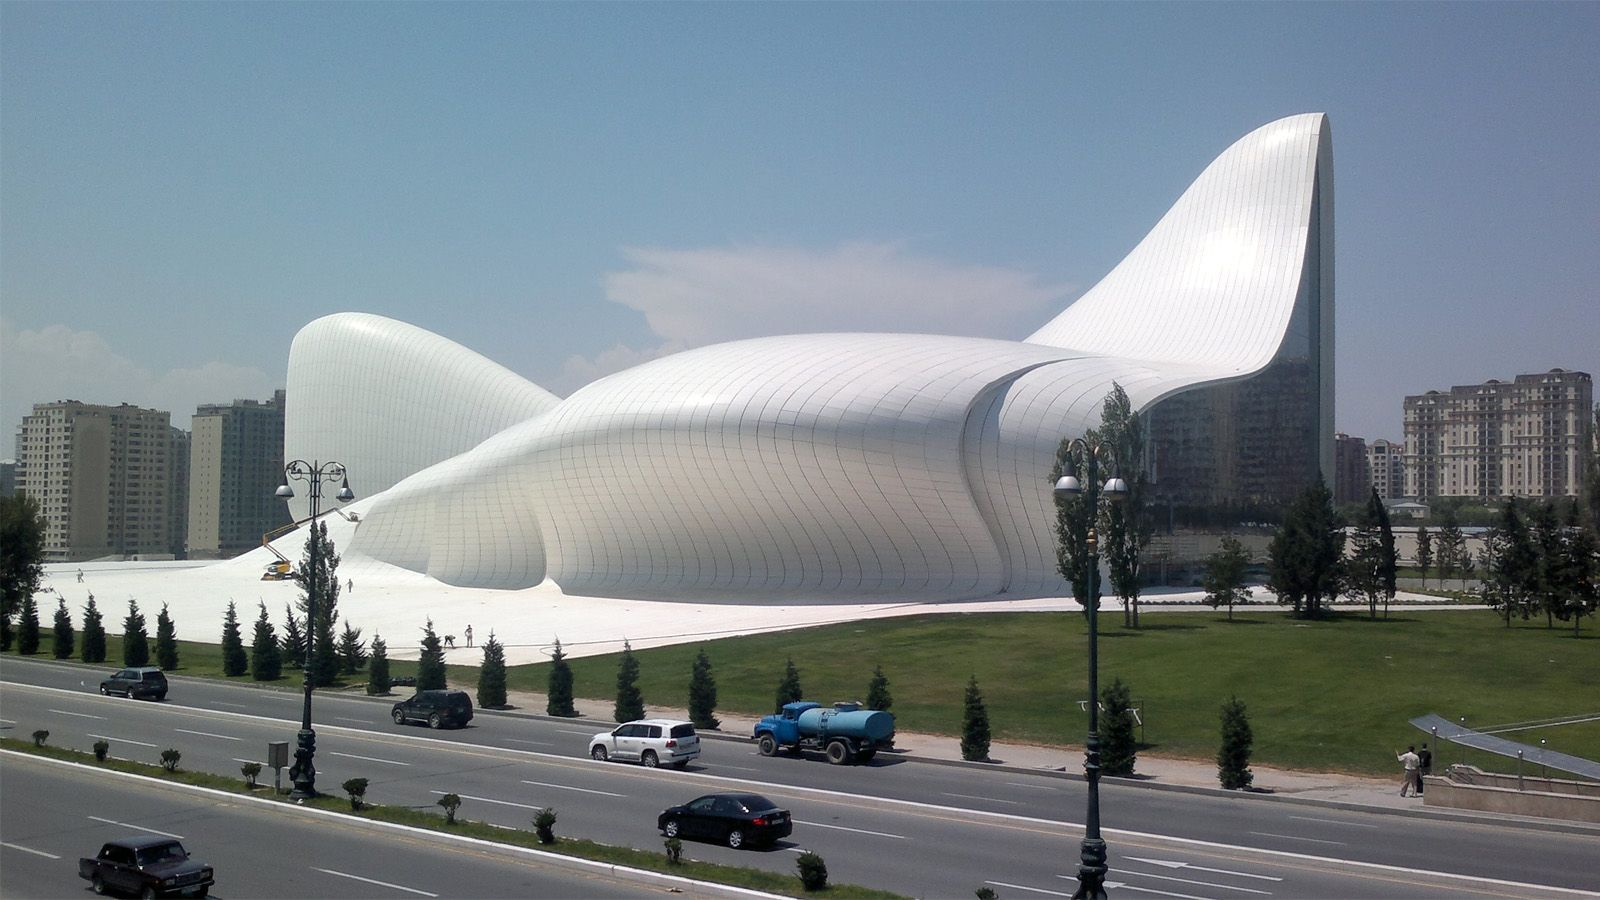 21st Century Buildings That Look Like Alien Spaceships Zaha Hadid Architecture Modern Architecture